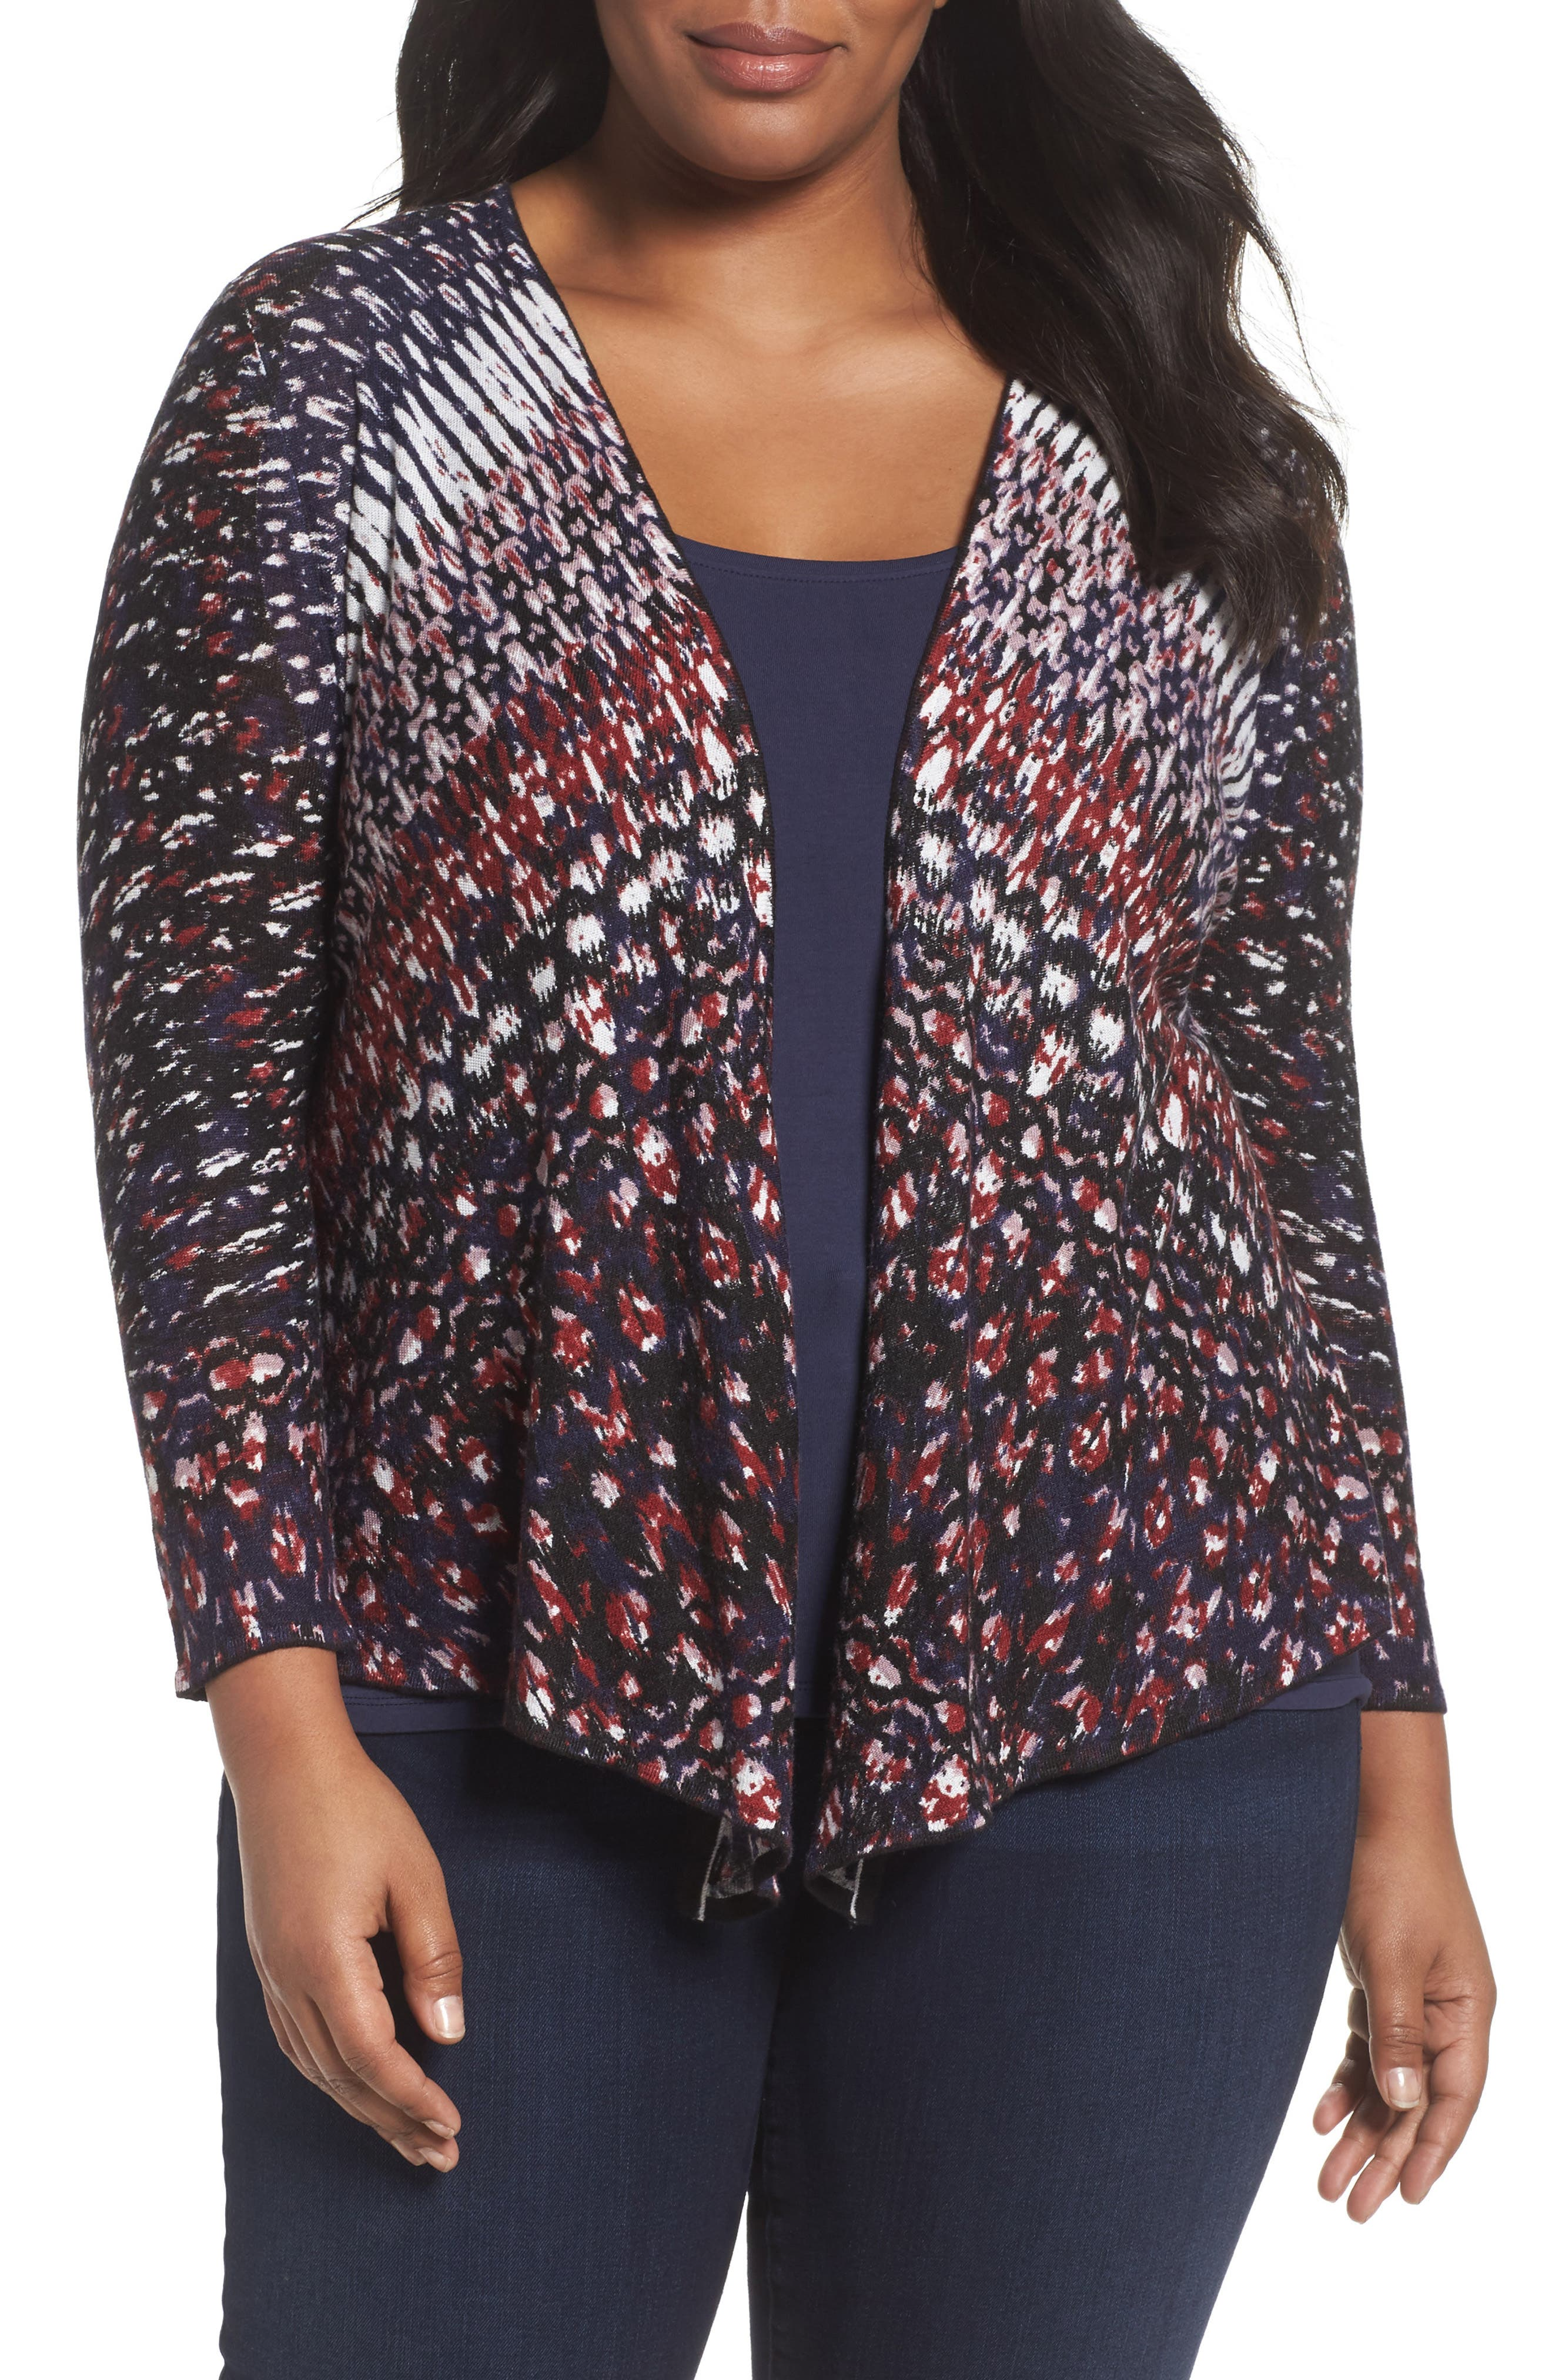 Alternate Image 1 Selected - NIC+ZOE Grace 4-Way Convertible Cardigan (Plus Size)